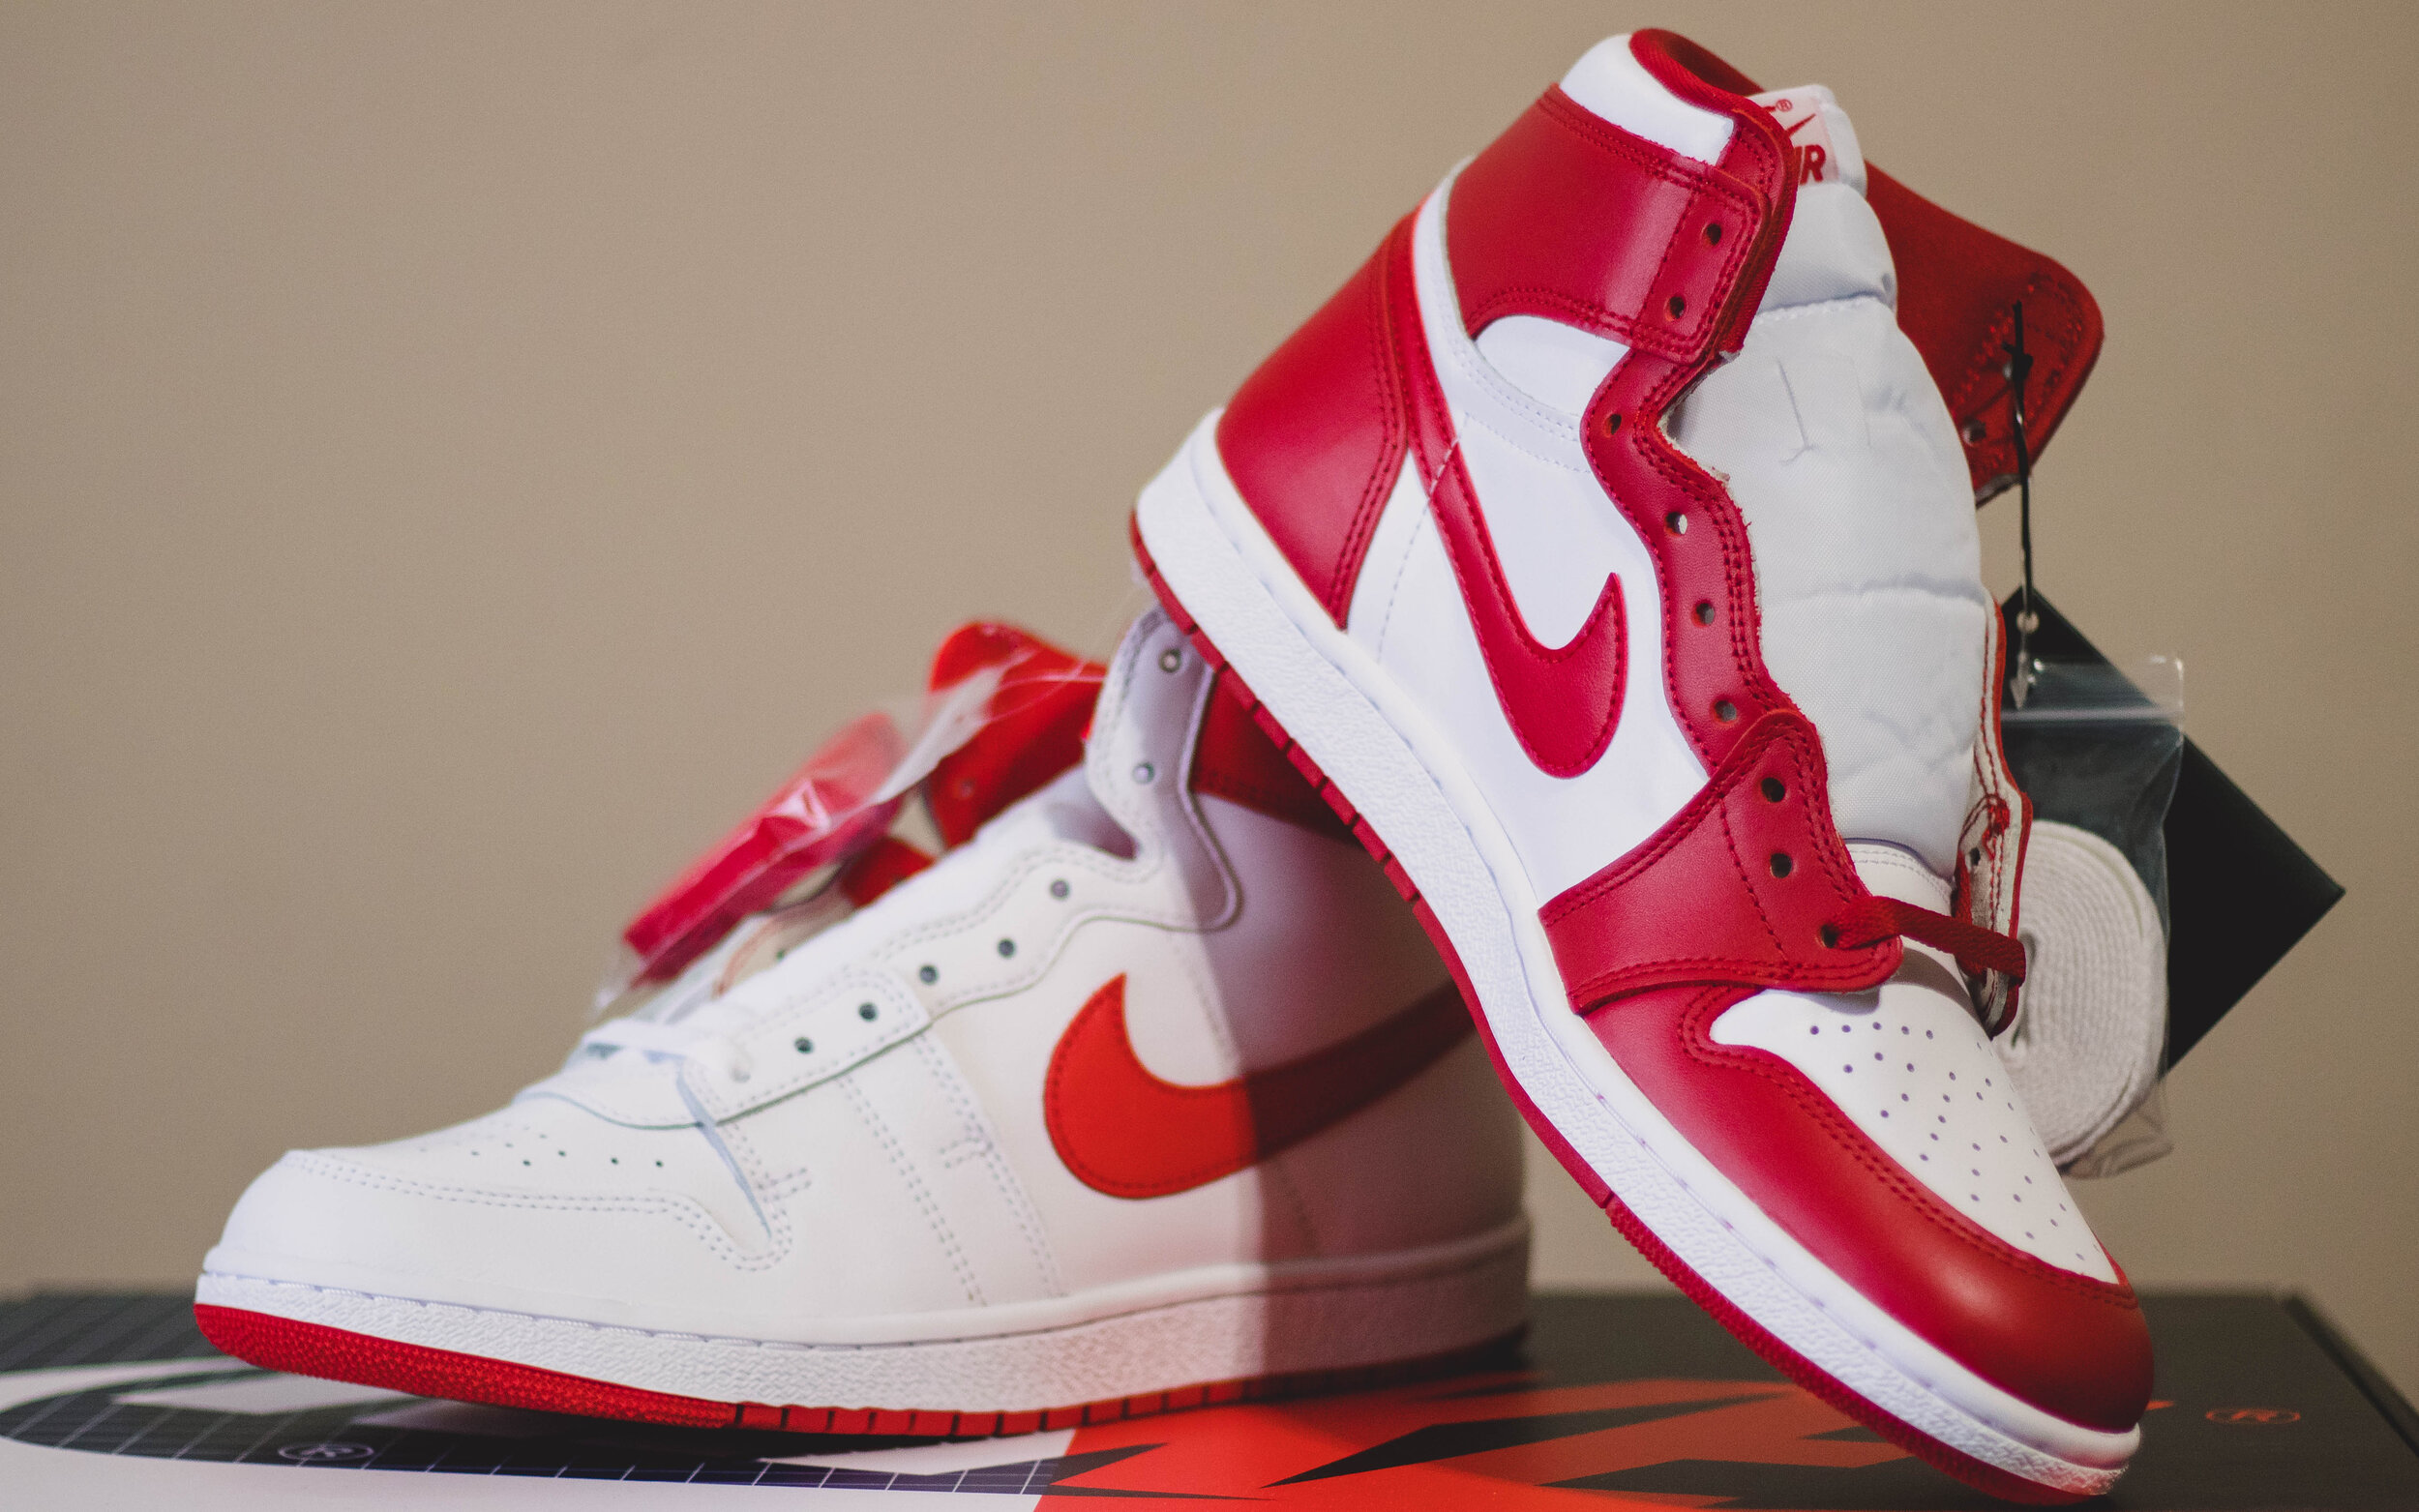 Nike and Jordan Release Retro Shoes for NBA All-Star Weekend ...